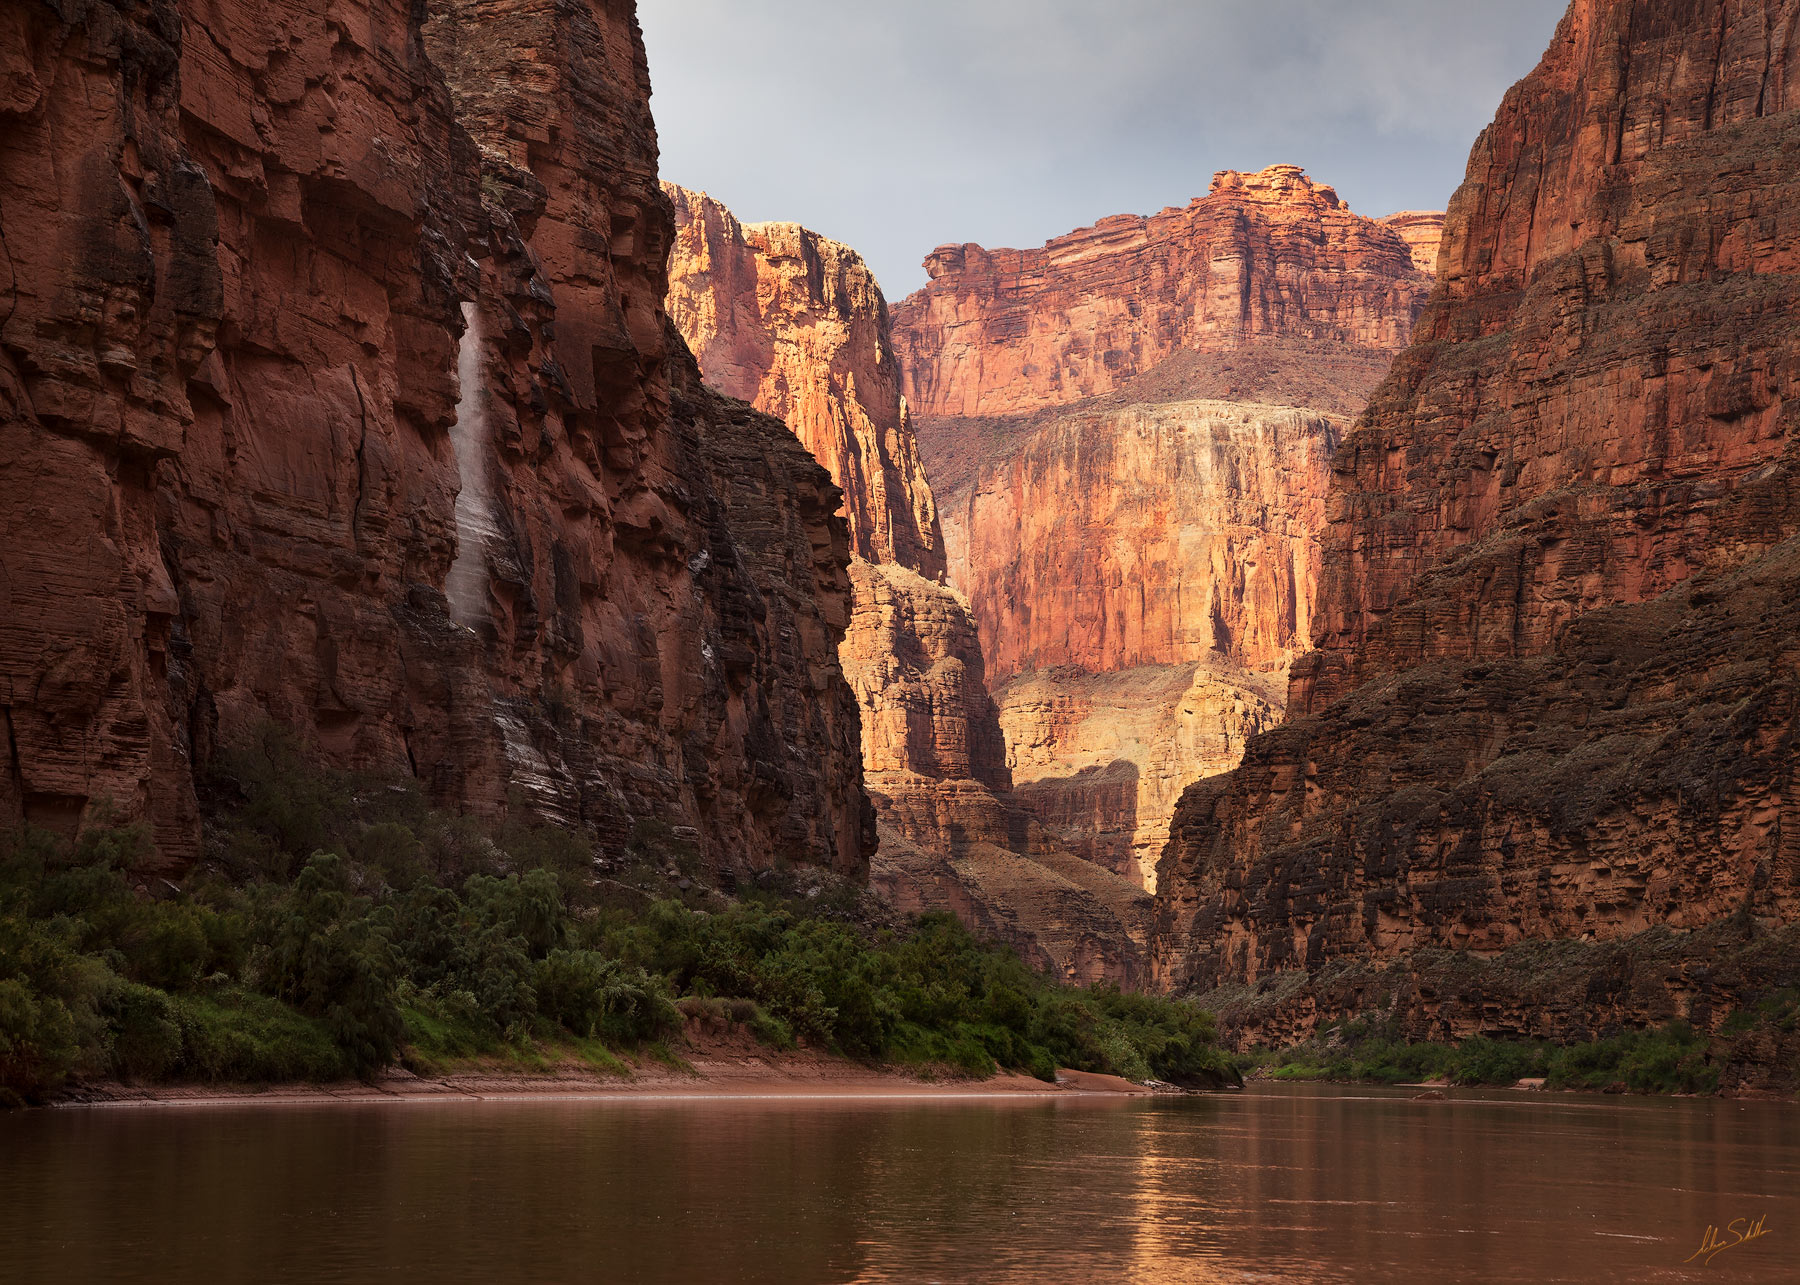 Arizona, Below the Rim, Colorado River, Expedition, Grand Canyon, National Park, River Trip, Waterfall, photo